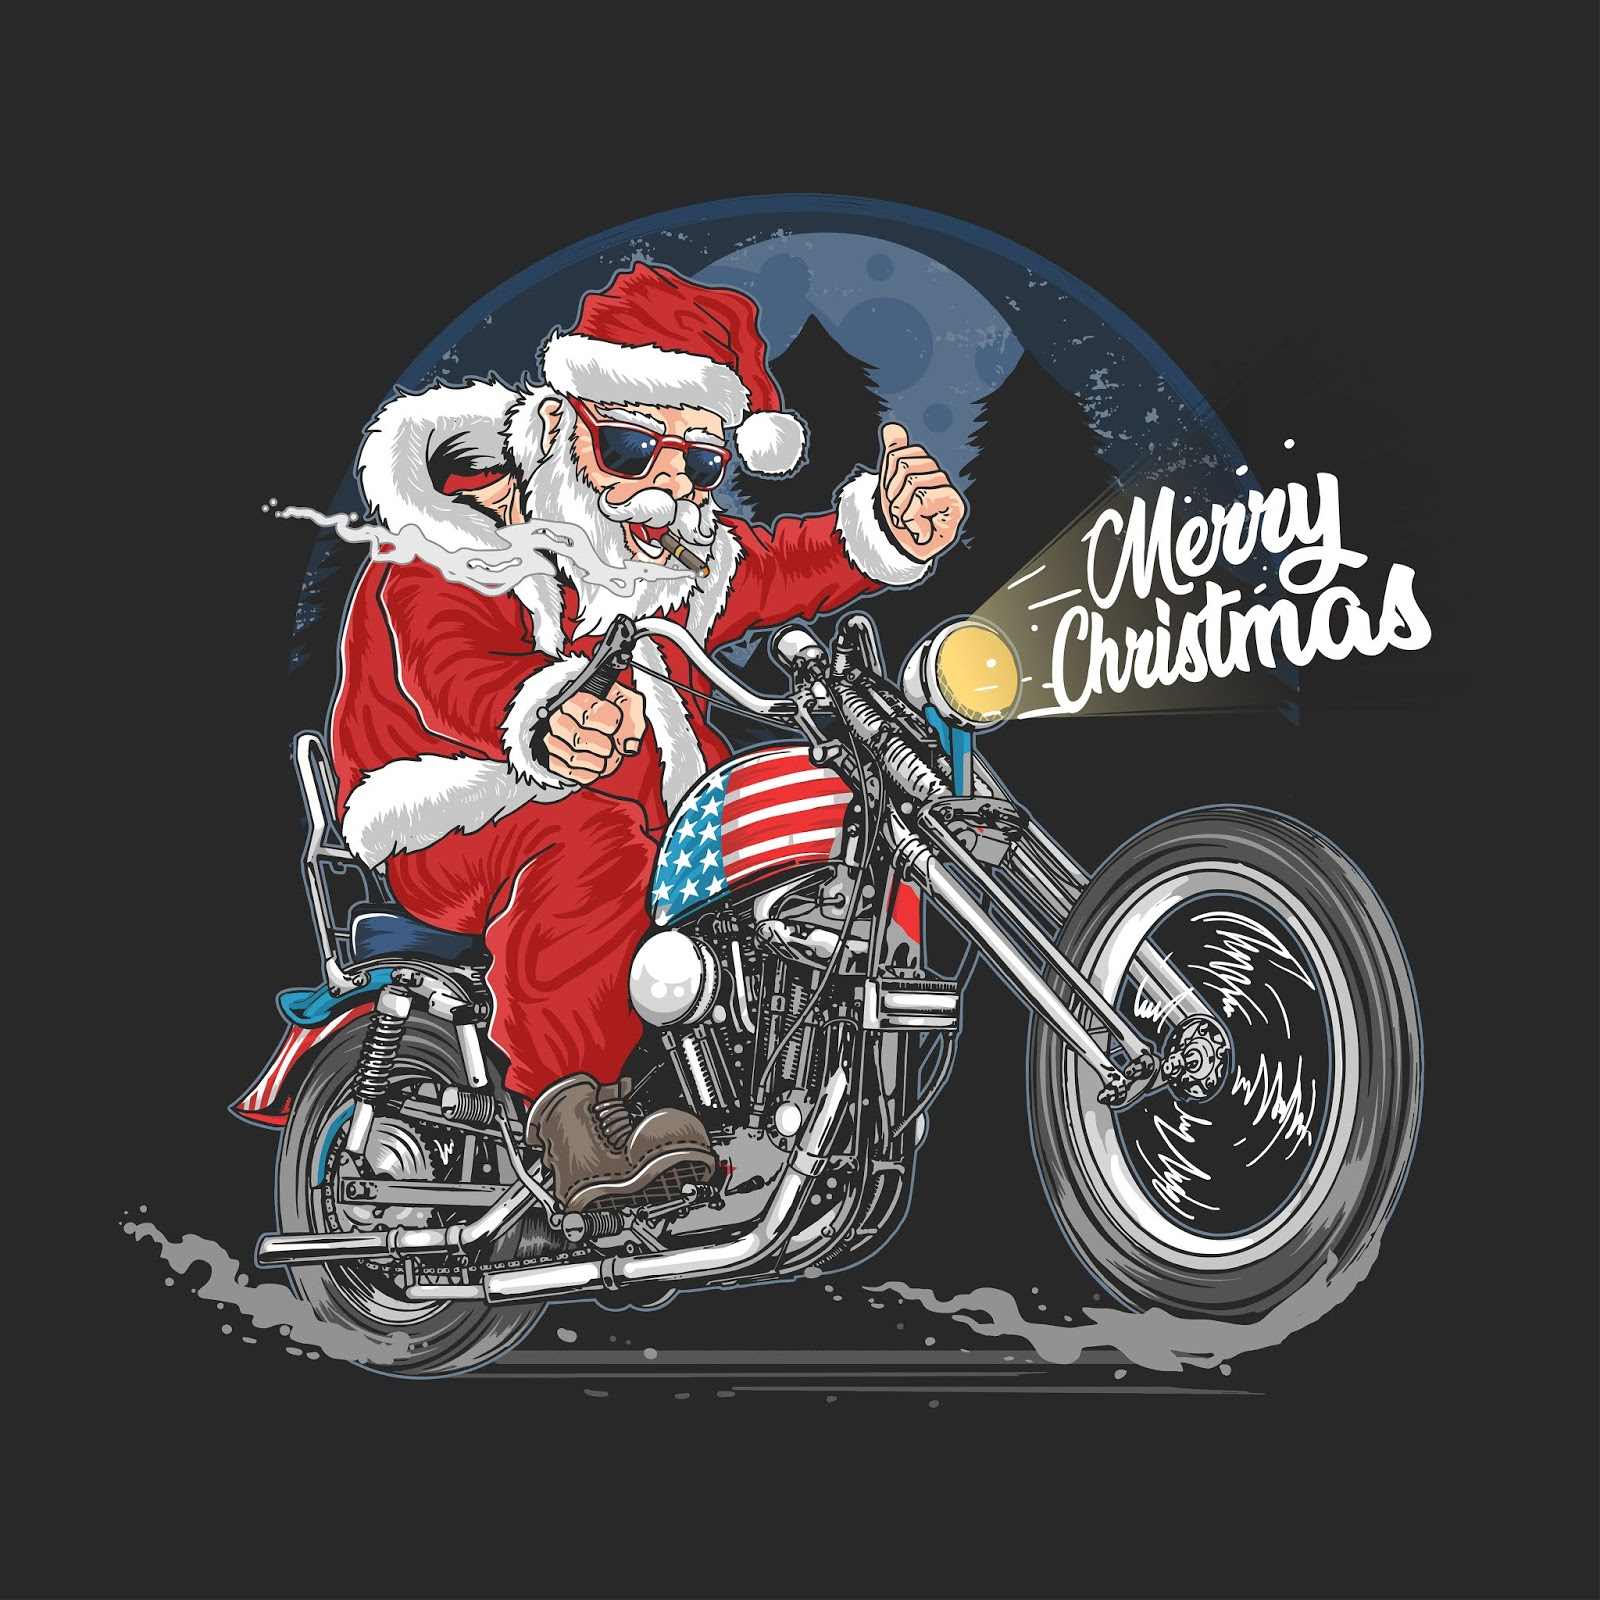 Santa Claus Christmas Usa America Tour Biker Motorcycle Motorbike Cooper Illustration Free Download Vector CDR, AI, EPS and PNG Formats